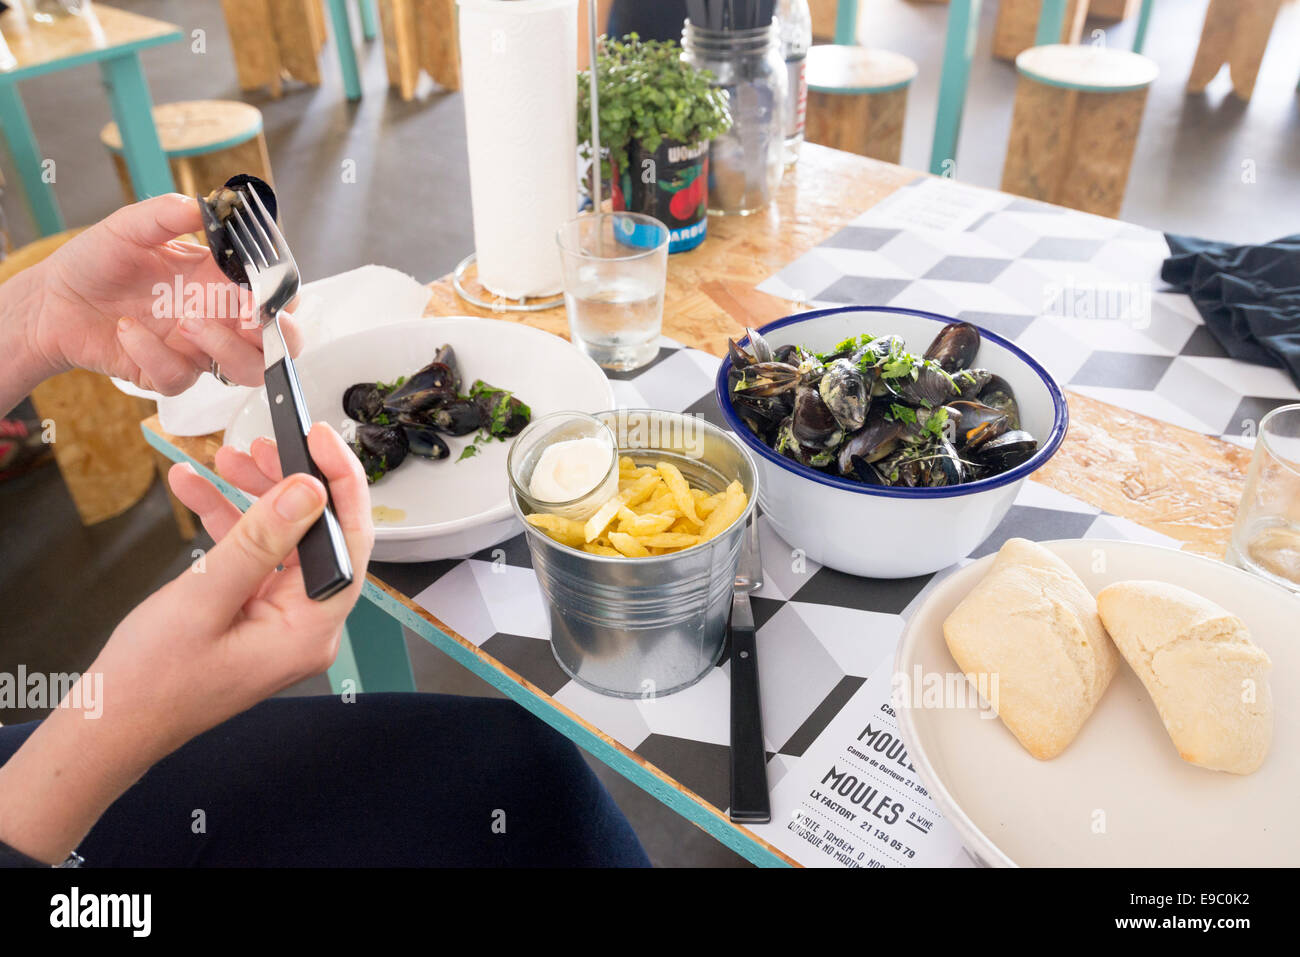 women eating mussles and bread at Moules & wine resturant in LX market, Lisbon, Portugal - Stock Image